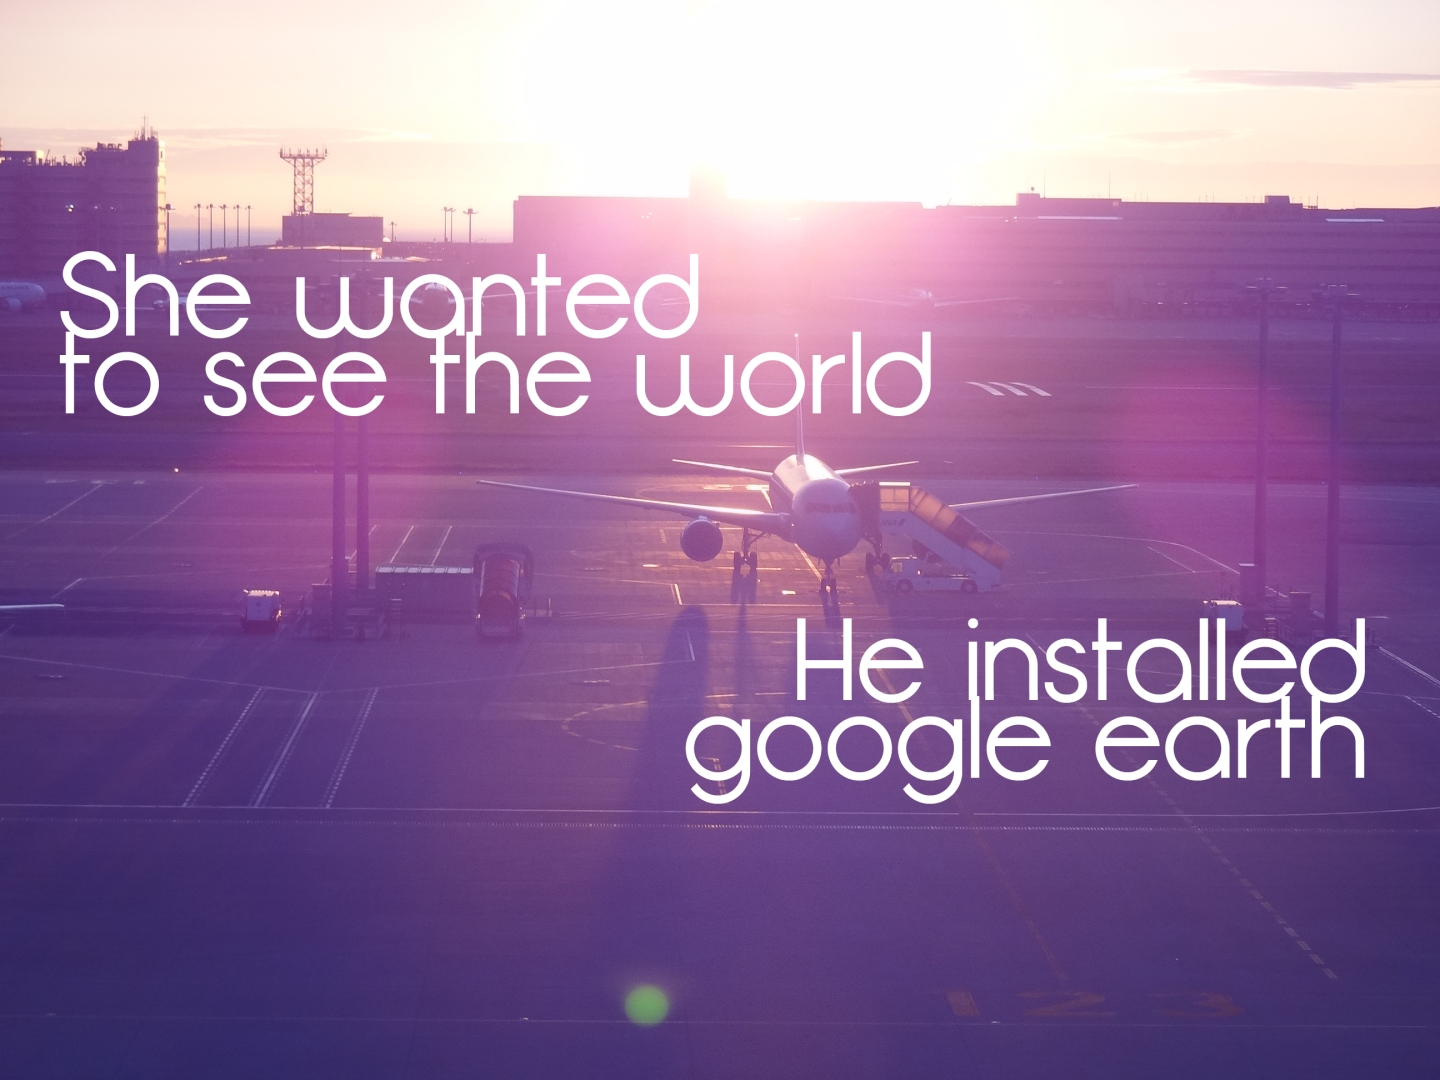 She wanted to see the world He installed google earth